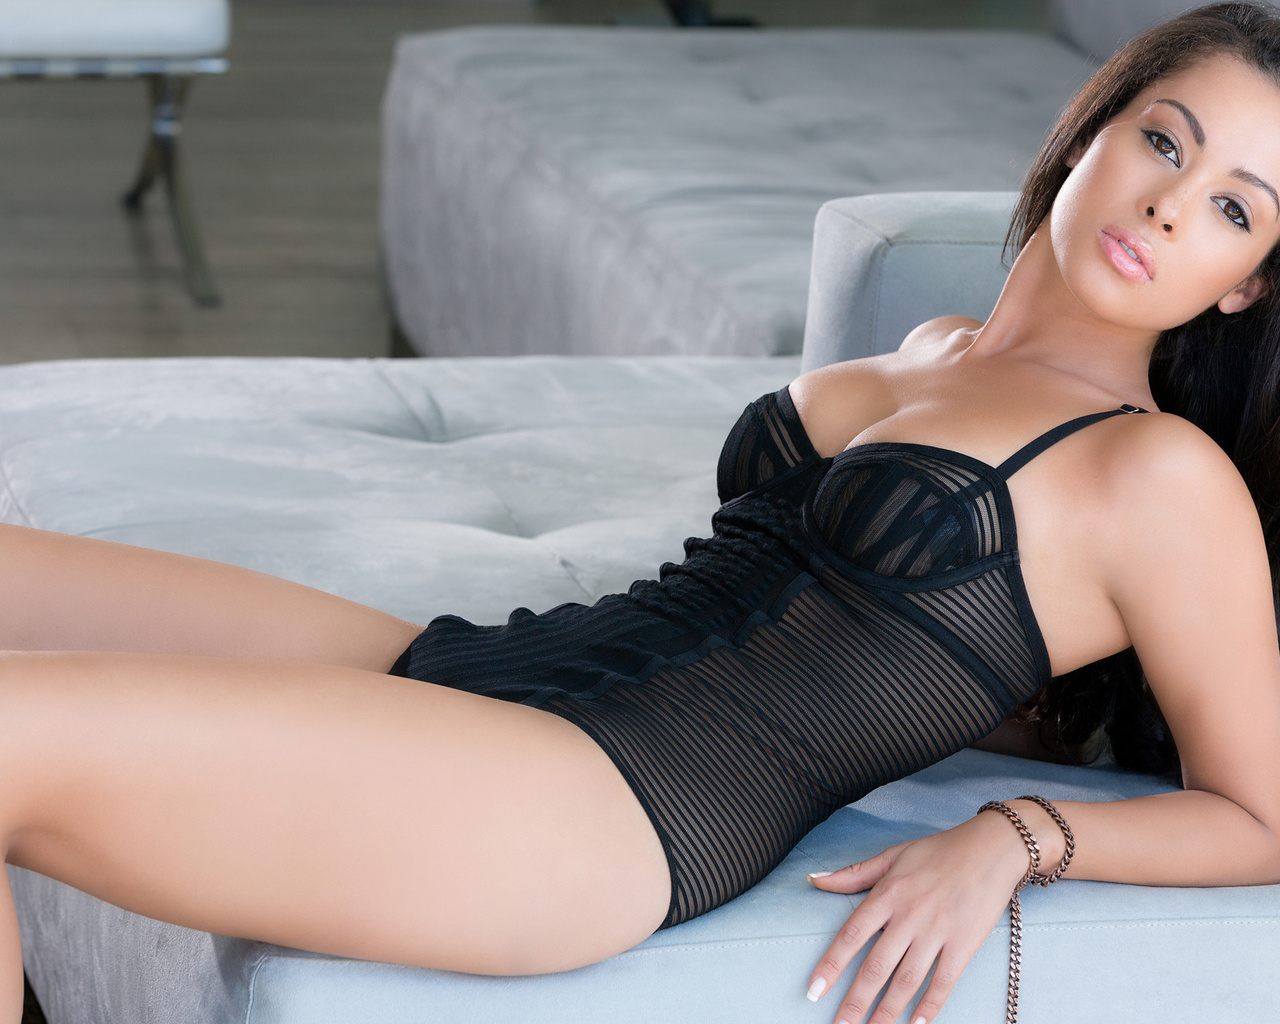 ashley doris, brunette, sexy, sofa, look, black swimsuit